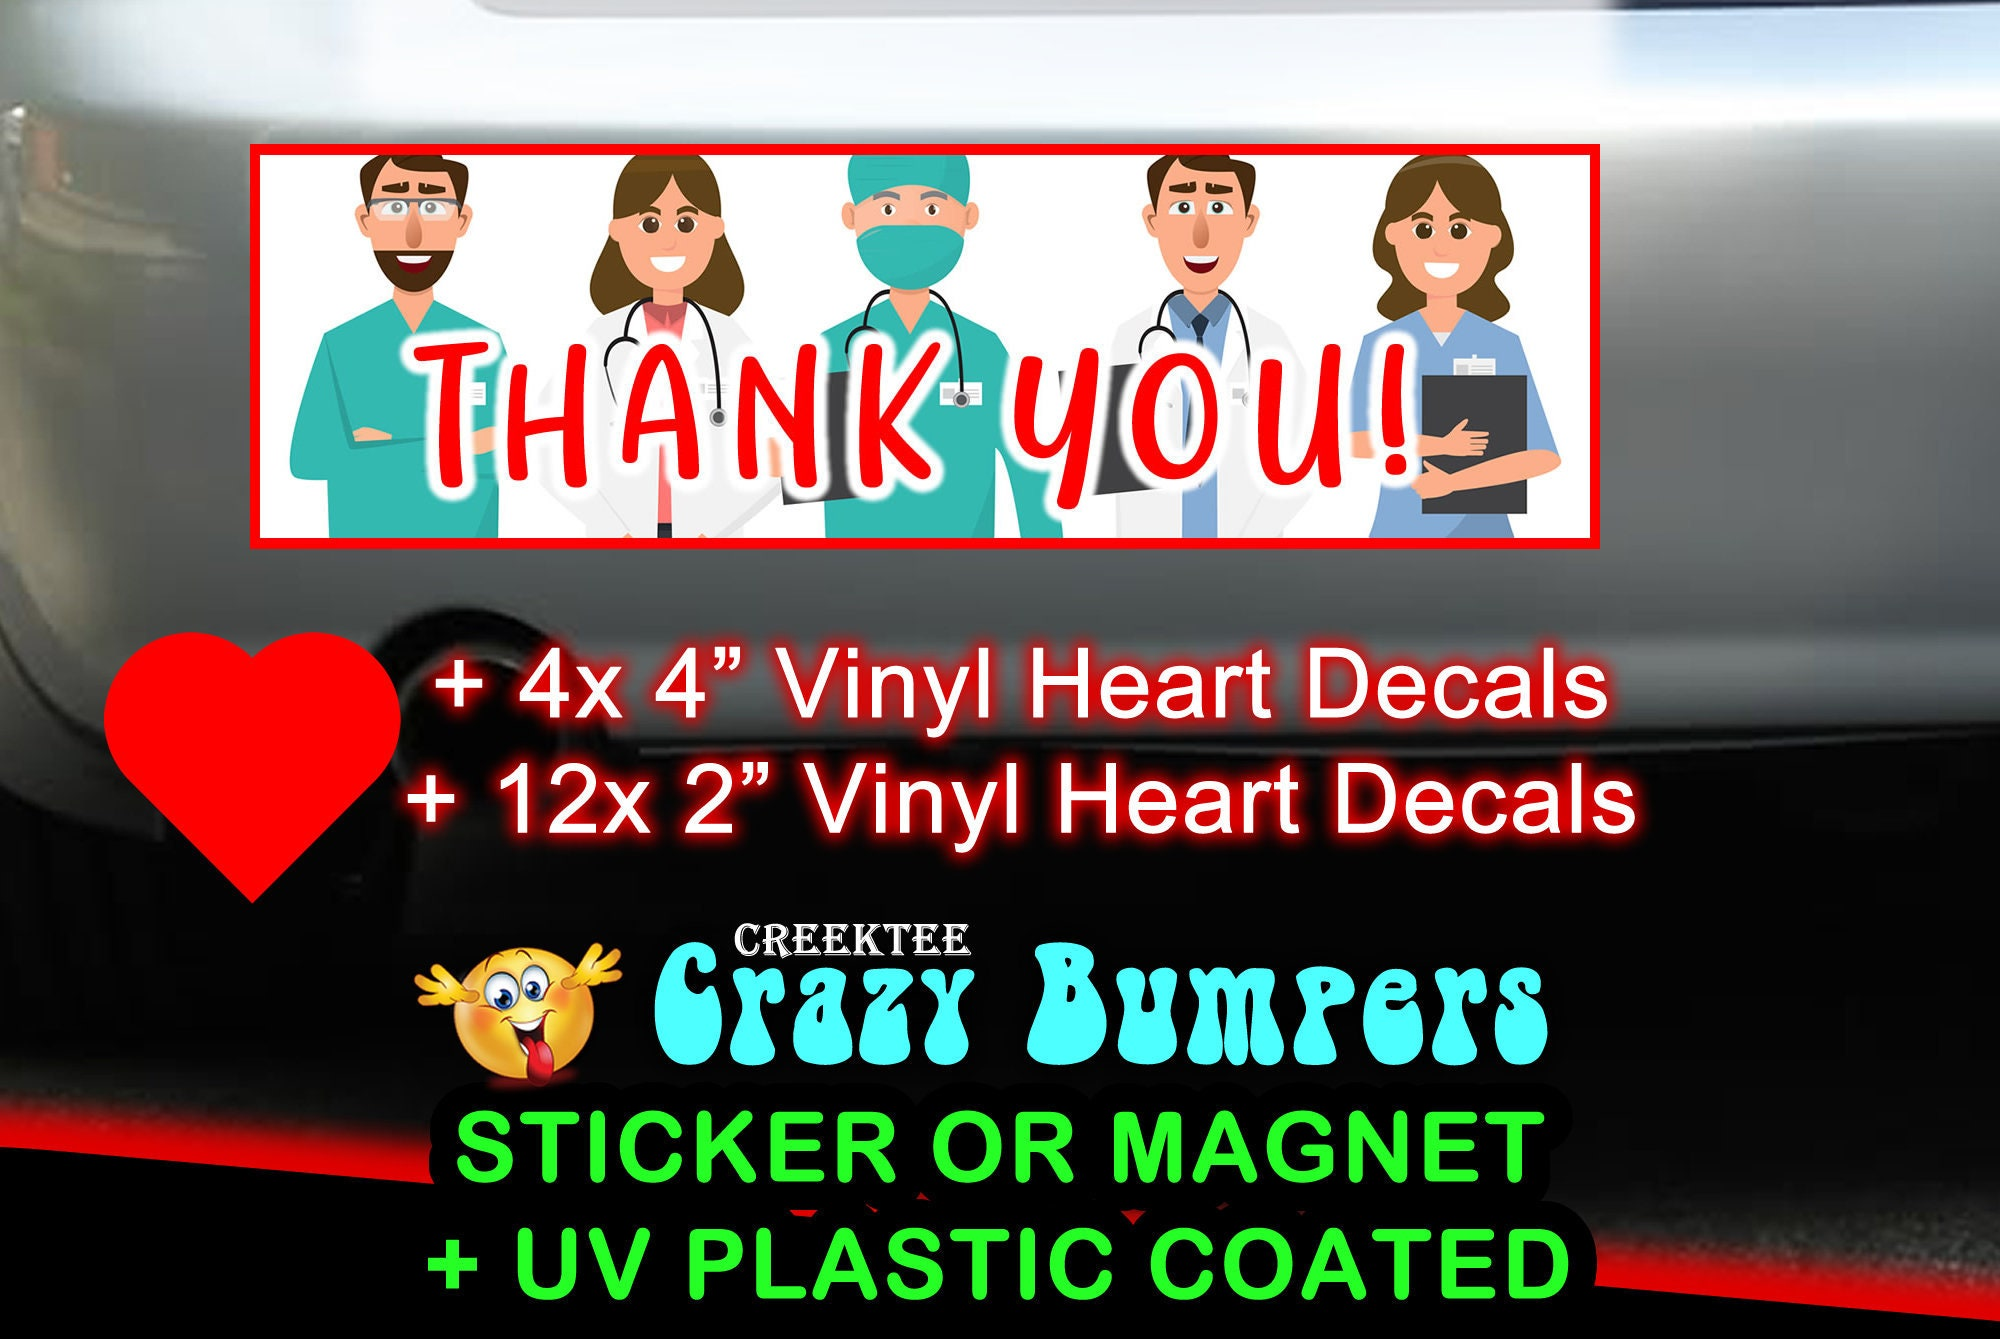 CAD$13.99 - Decals + Nurses Doctors Thank You bumper sticker or magnet, 9 x 2.7 + 4x (4 inch vinyl decal hearts) + 12x (2 inch vinyl decal hearts)